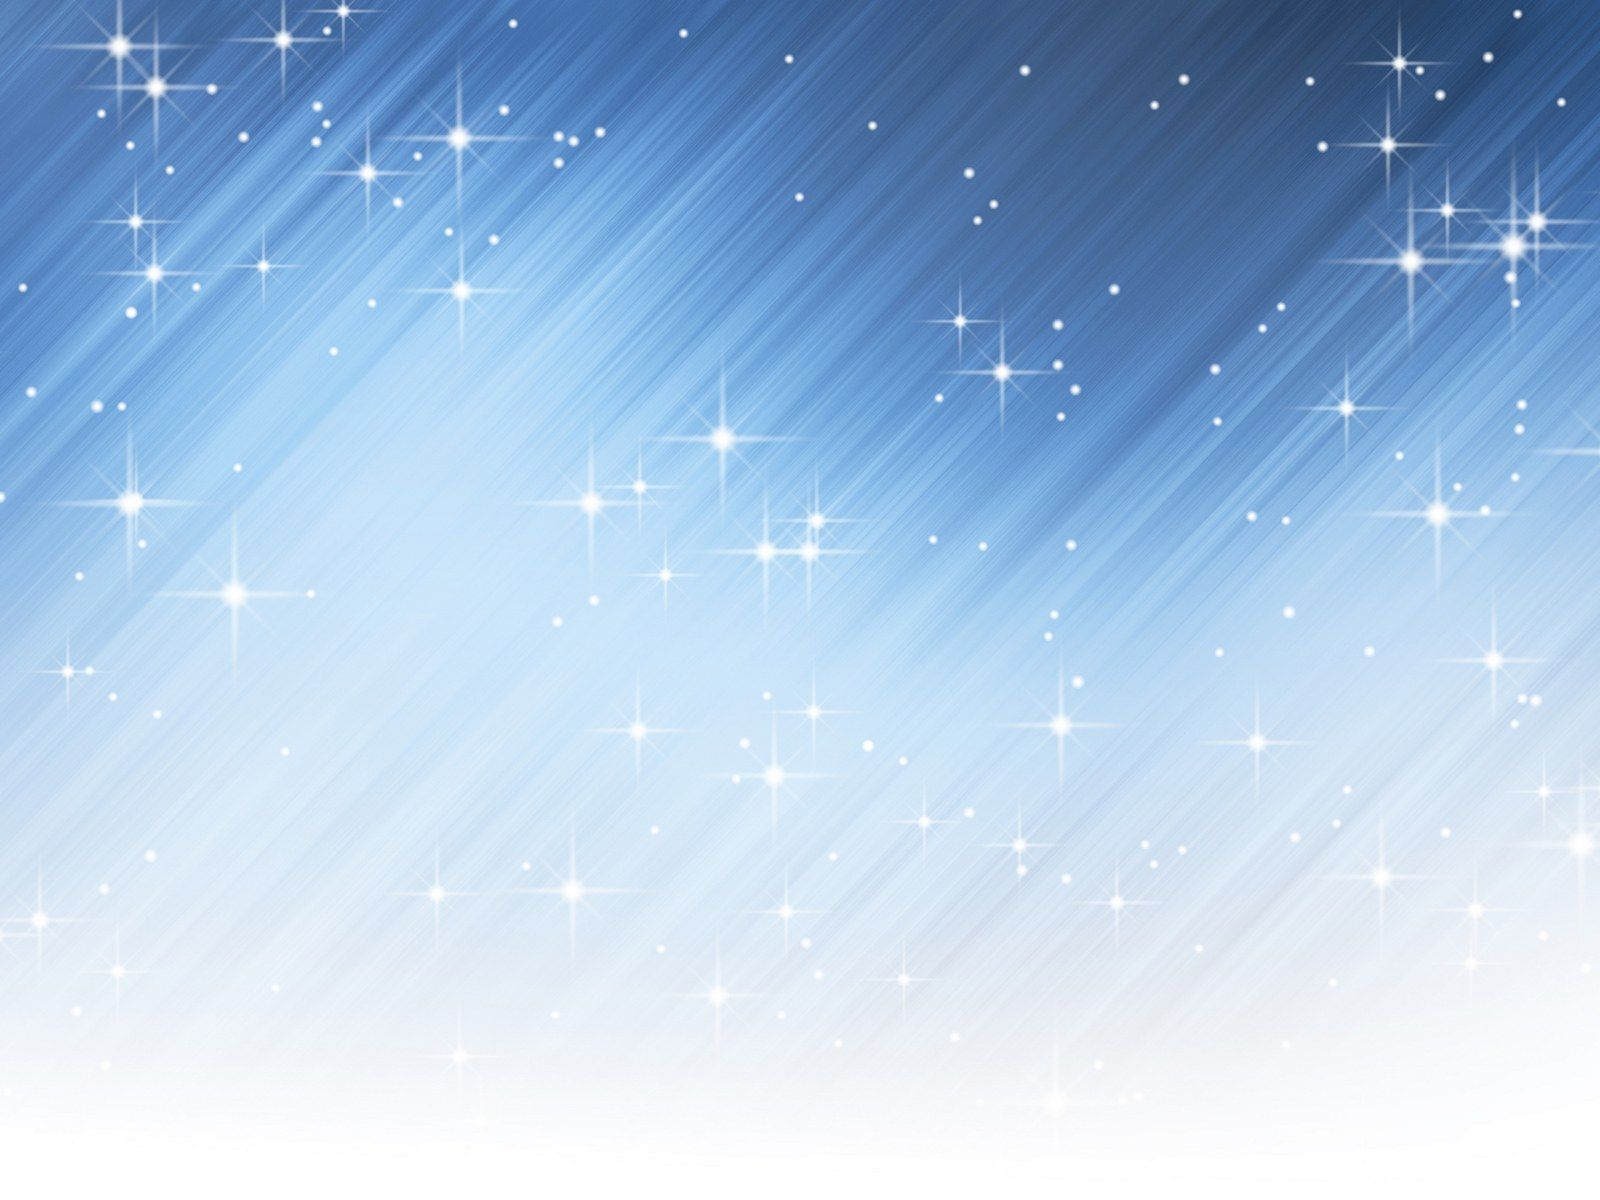 Light Blue and White Abstract Background - See more ...